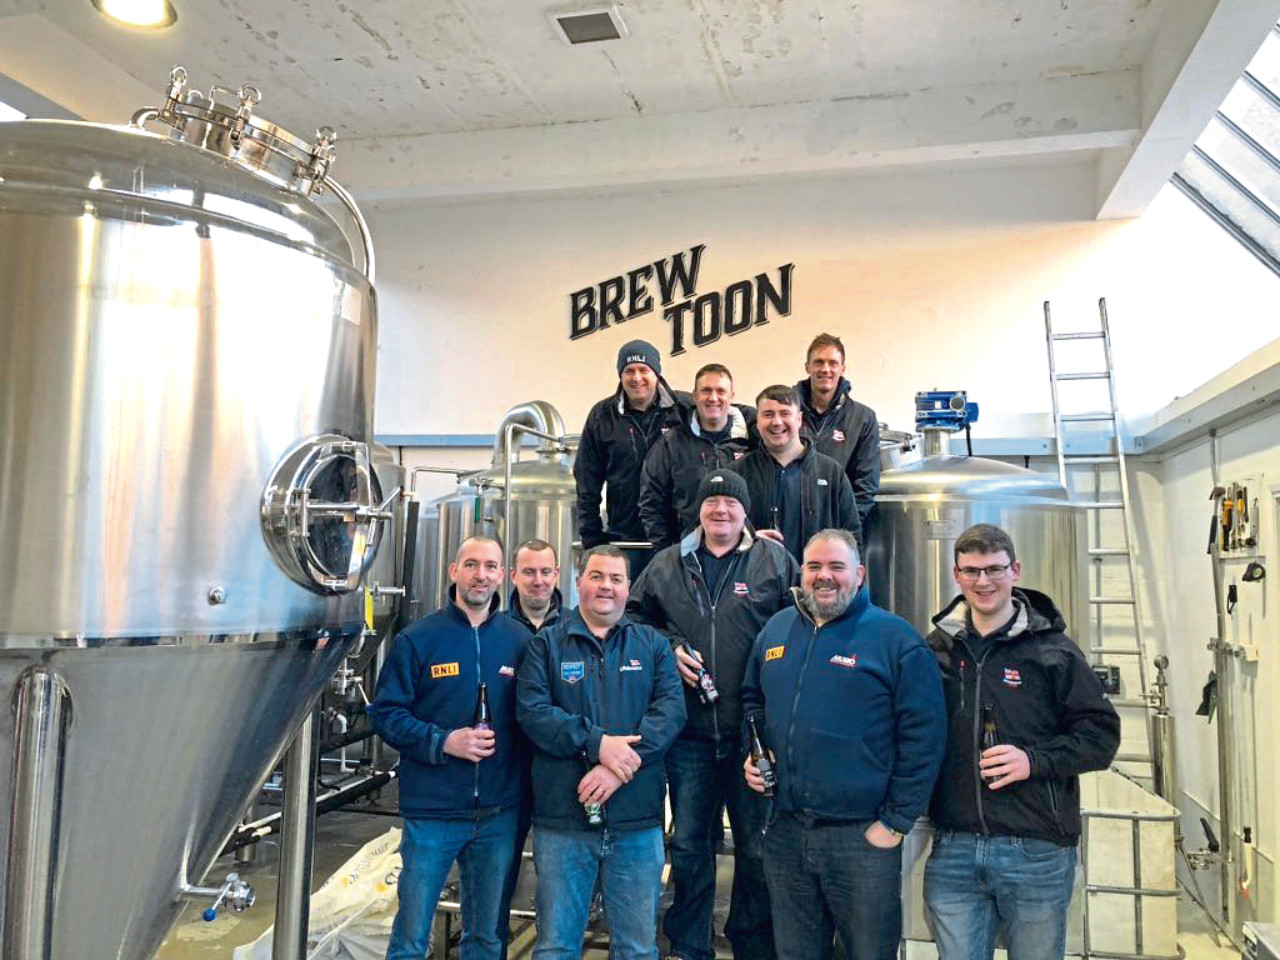 The team visited the Brew Toon brewery to create the beer